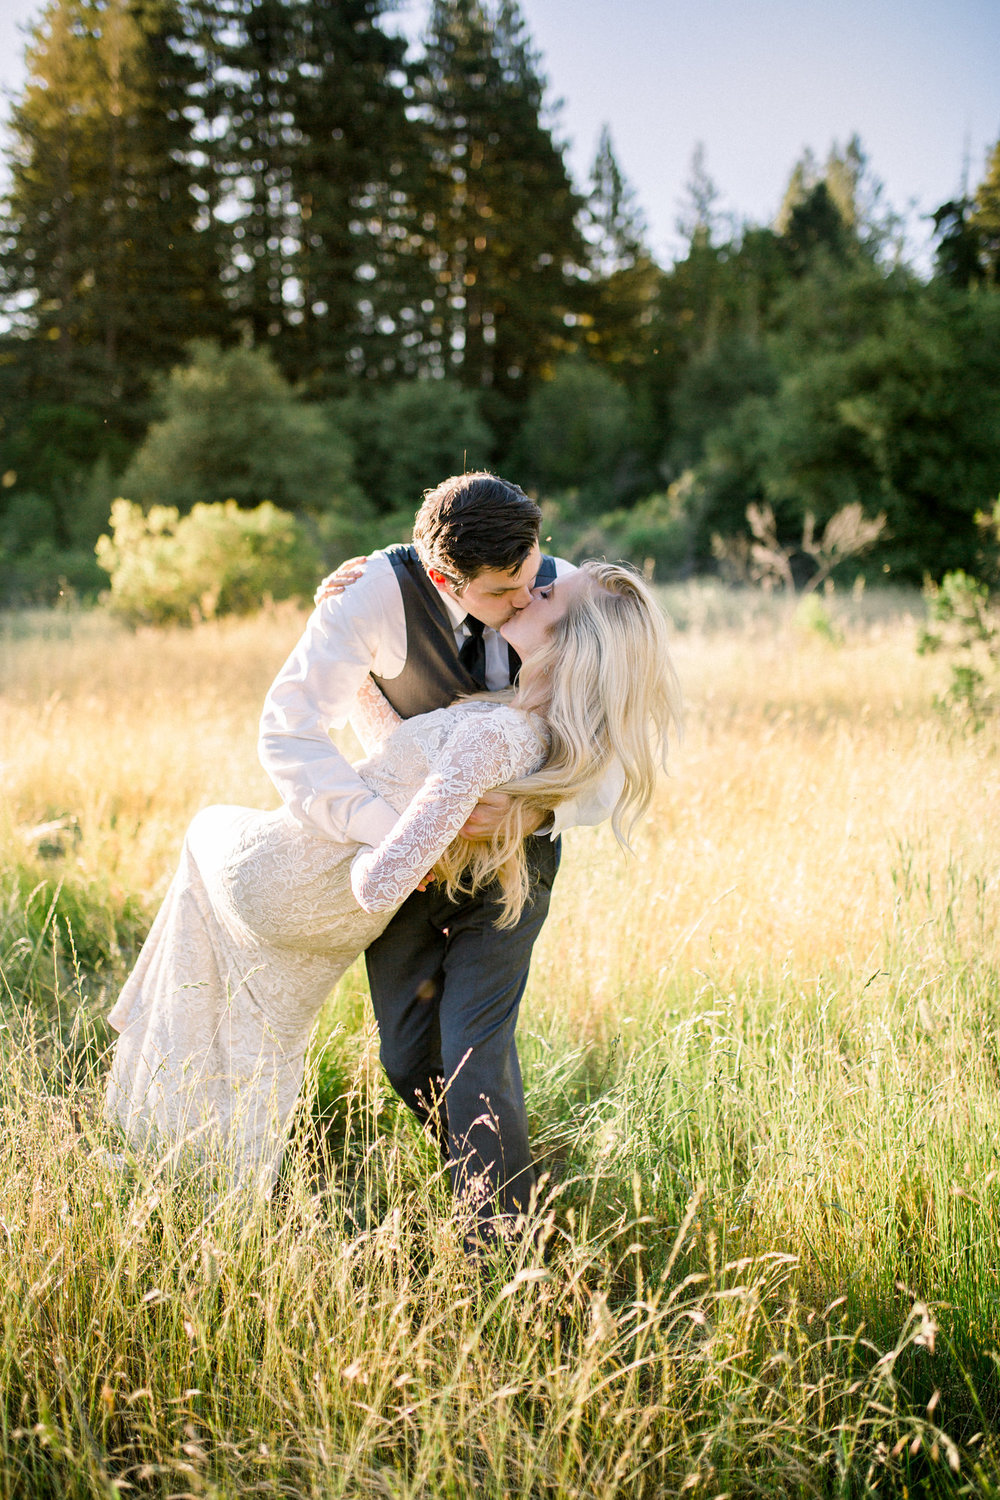 groom kissing bride in lace long sleeve white wedding gown in grassy field during golden hour kim baker beauty san jose california makeup artist